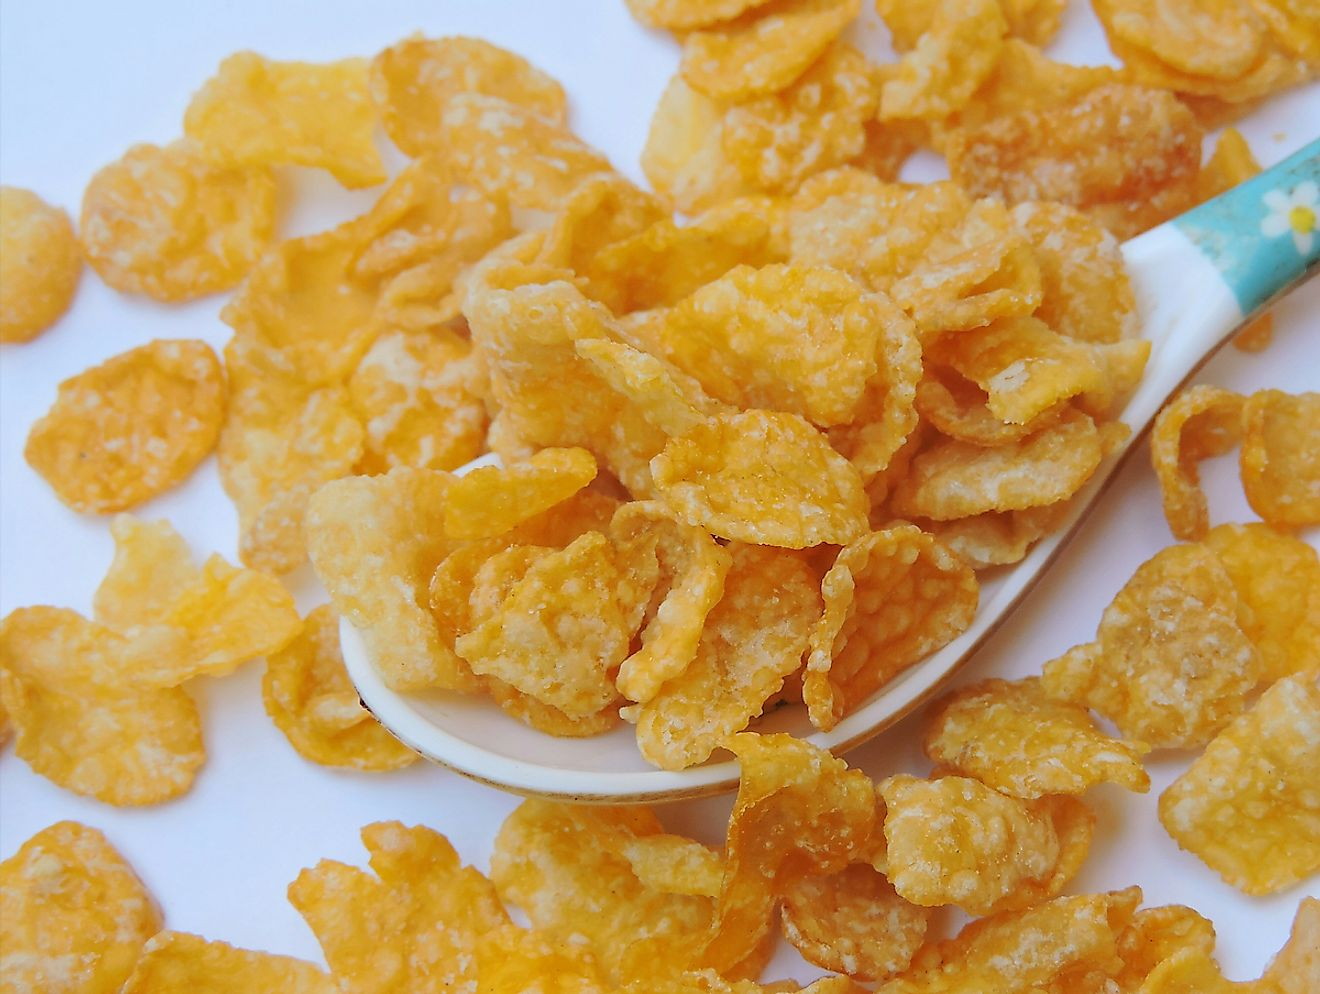 Corn flakes, or cornflakes, are a breakfast cereal made by toasting flakes of corn (maize). Image credit: Gyan Pratim Raichoudhury Shutterstock.com